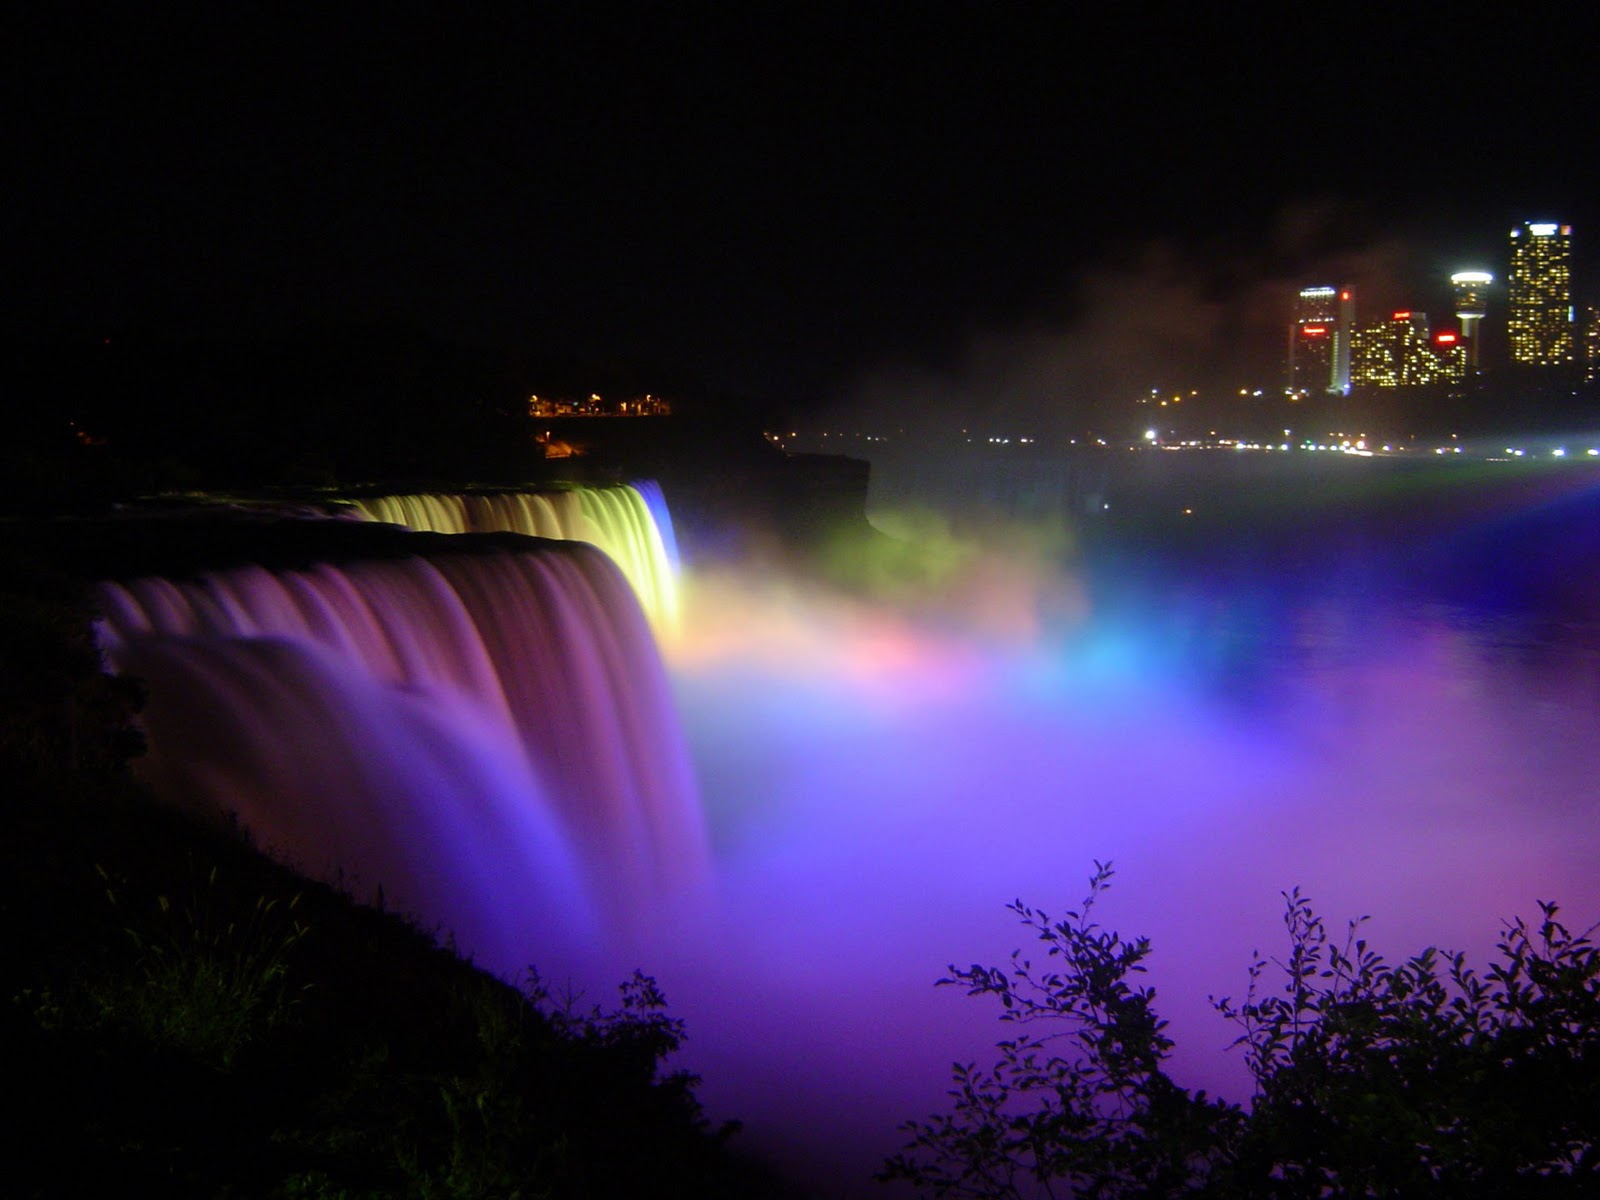 Niagara Falls Canada Is Probably Best Known As A Honeymoon Destination Attracting Millions Of Honeymooning Or Just Plain Romantic Couples Every Year